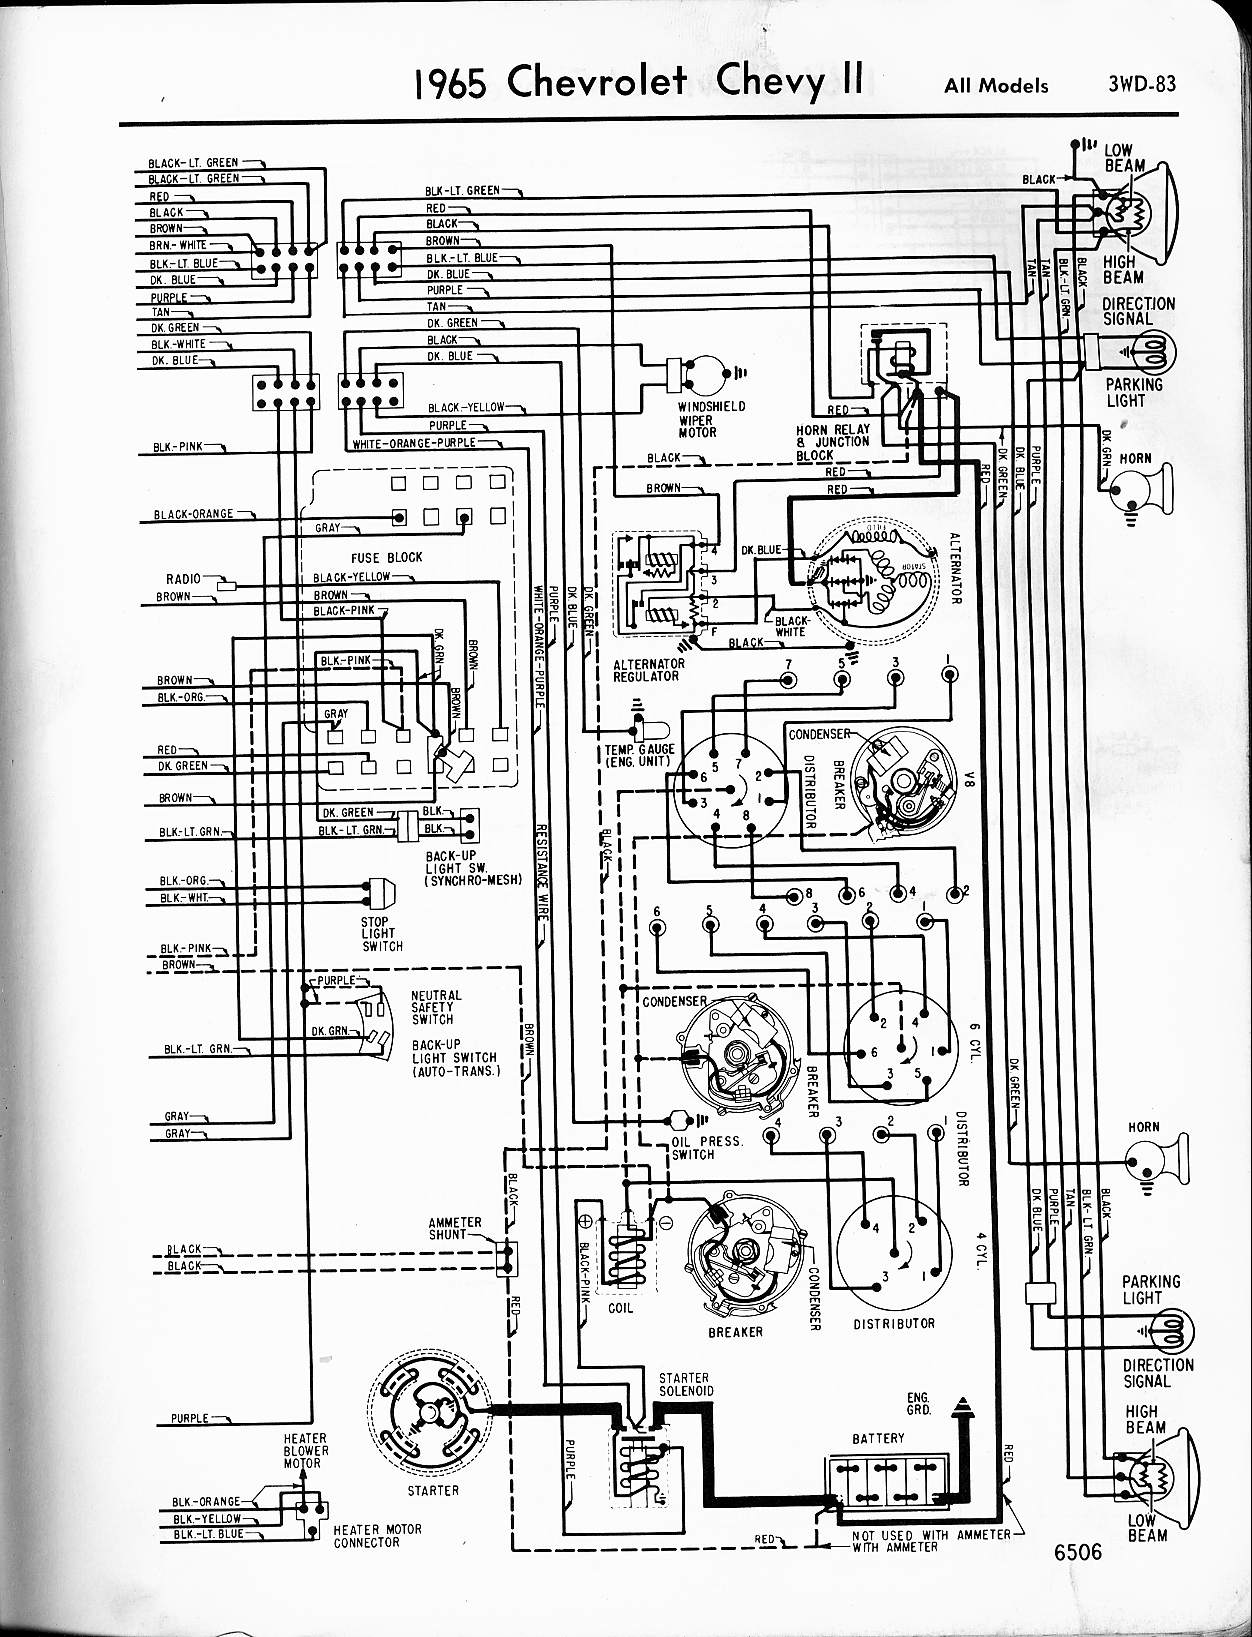 MWireChev65_3WD 083 chevy diagrams 65 chevy wiring harness at suagrazia.org